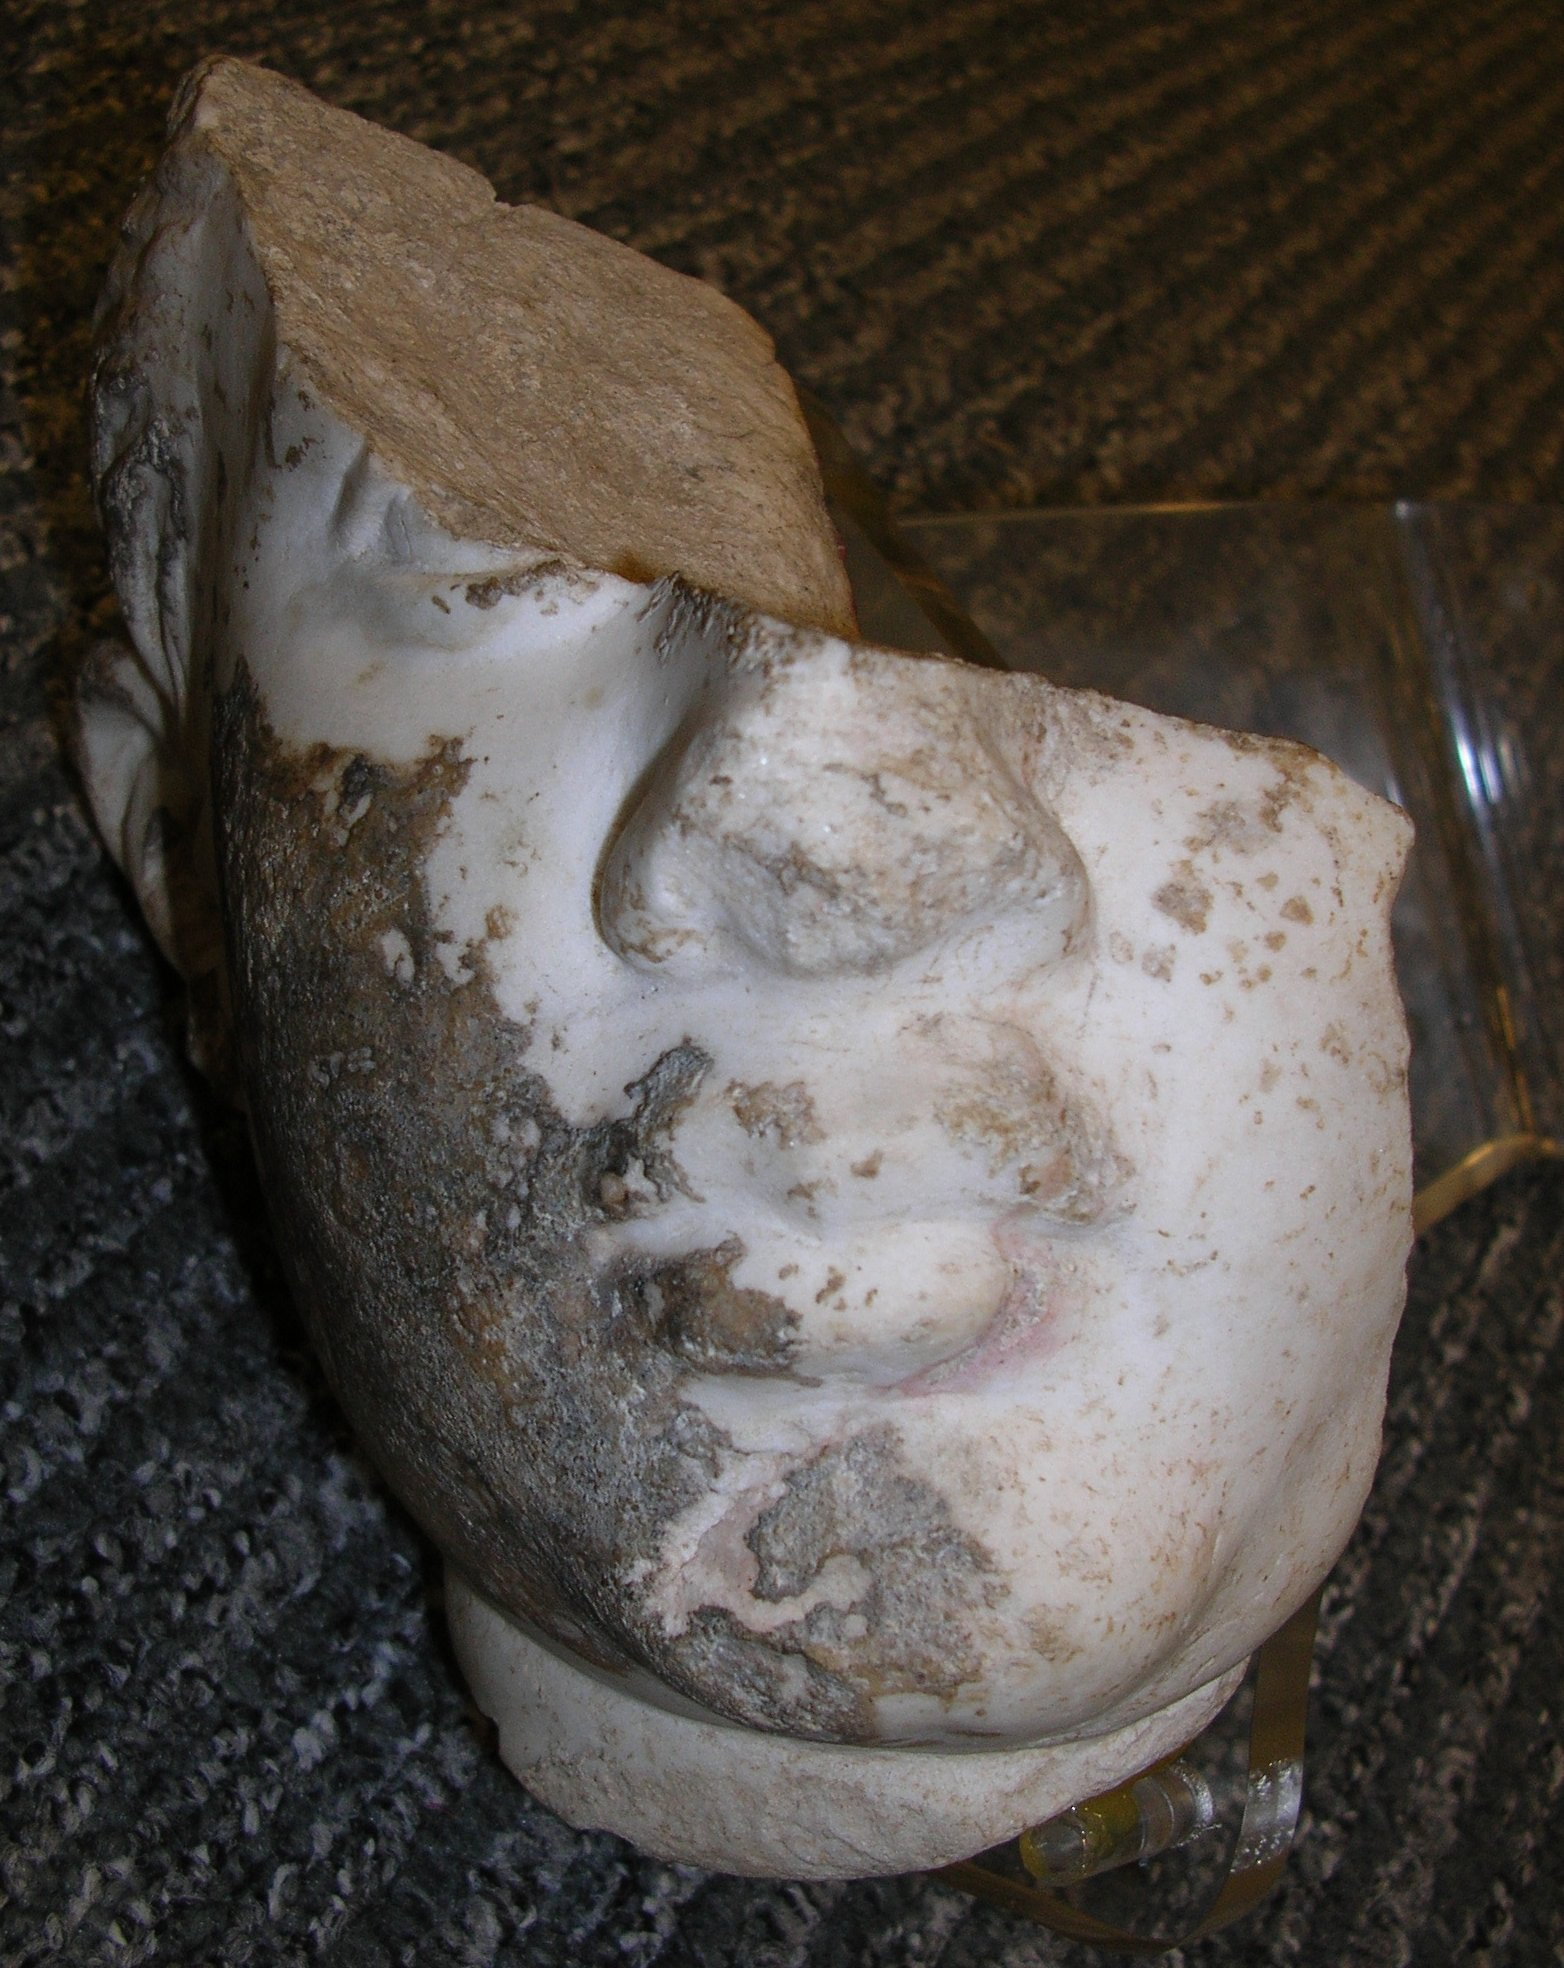 The adolescent face of Nero, found at Fishbourne palace in Southern Britain